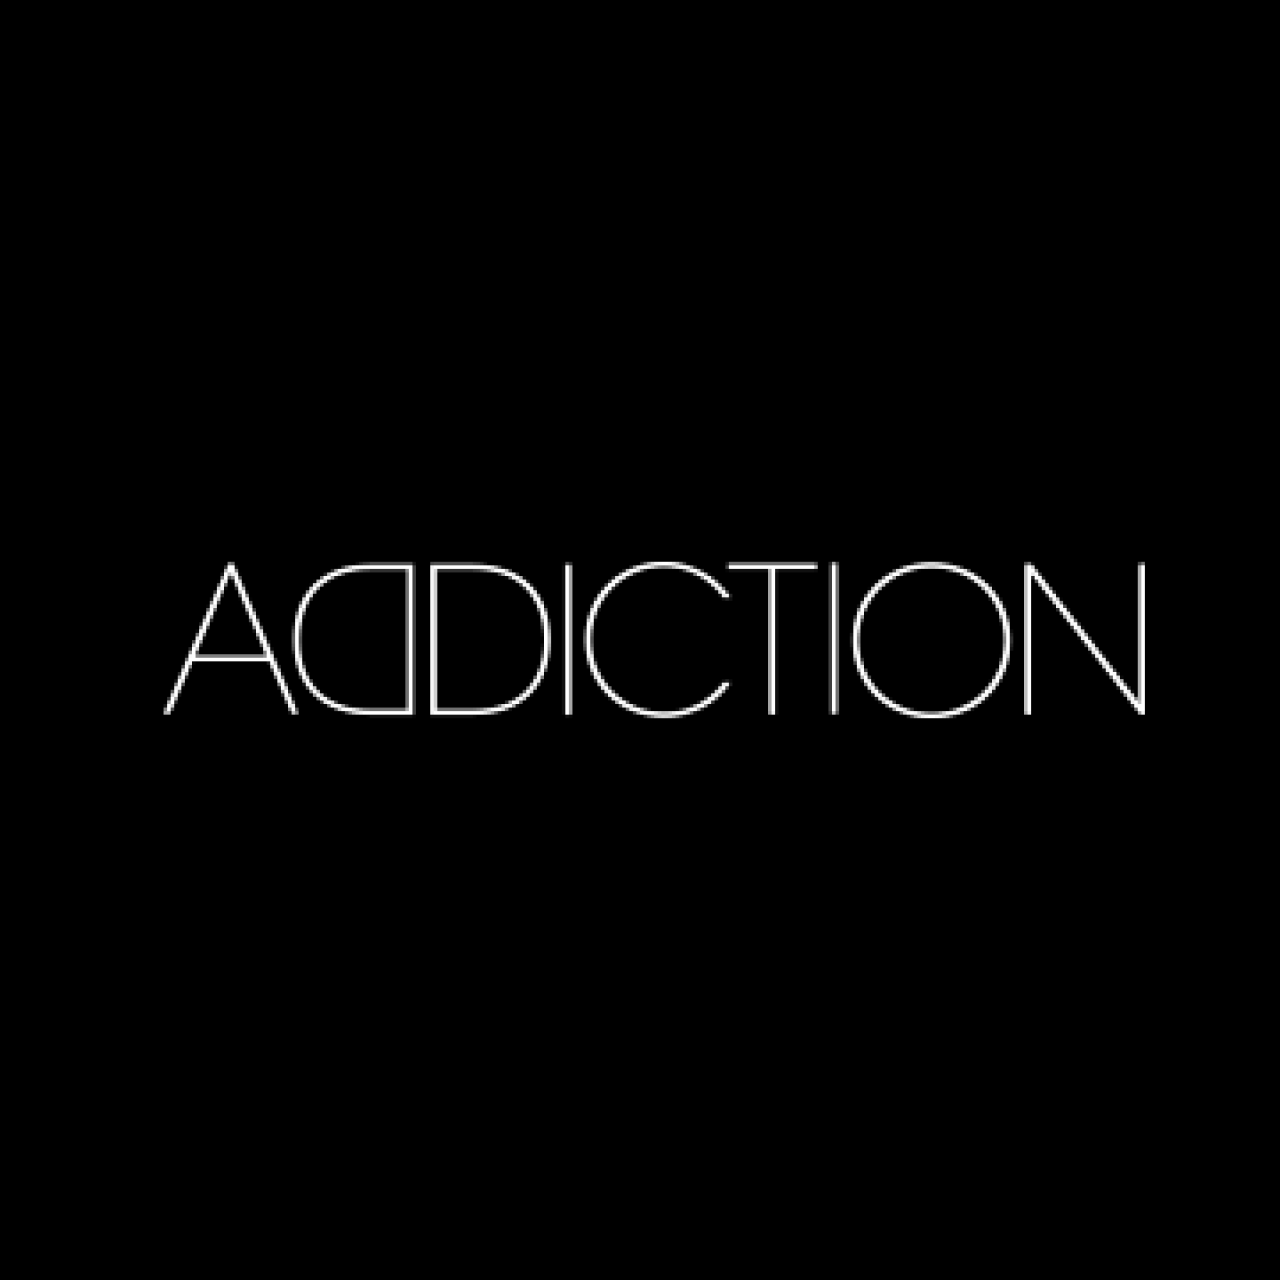 ADDICTION ロゴ